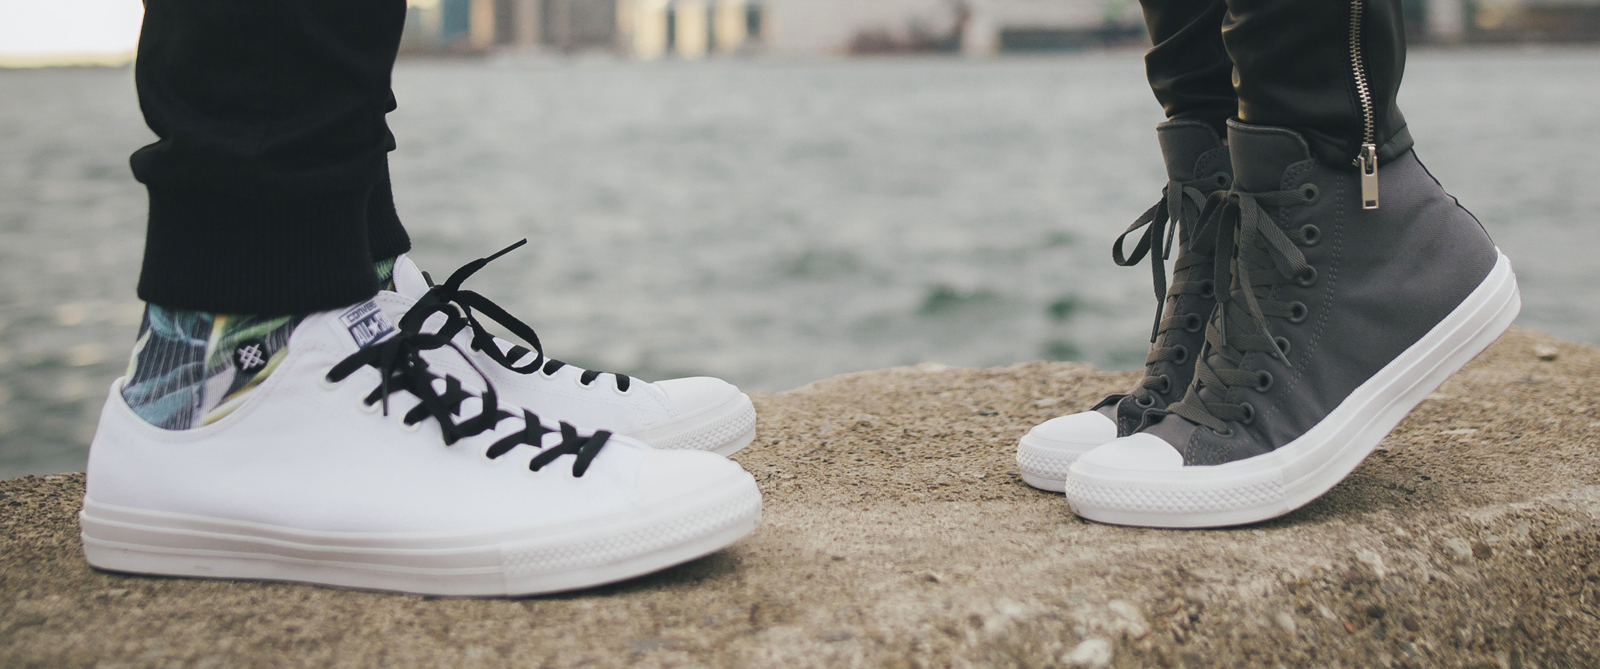 c55d506368e5 Converse Presents the Chuck Taylor All-Star II SS16 Core Collection ...